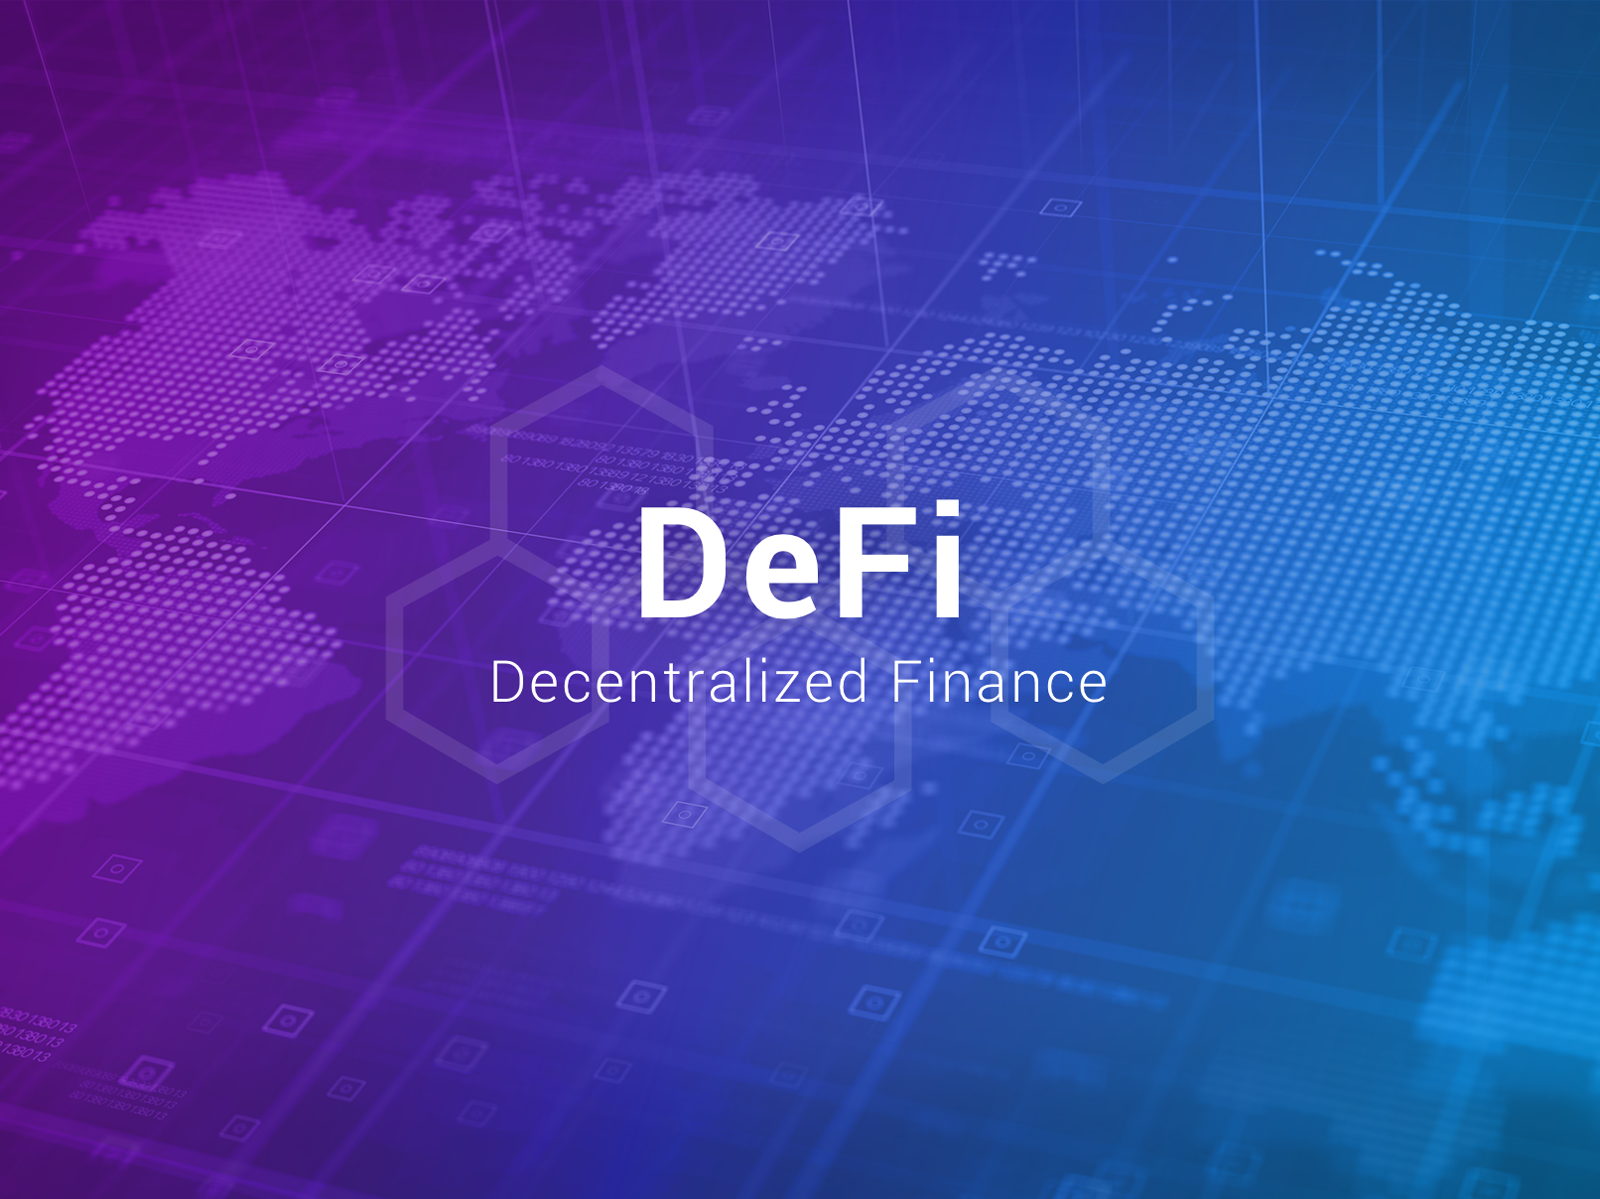 Morpheus Labs Dive into Decentralized Finance to Help Companies Accelerate DeFi Application Development